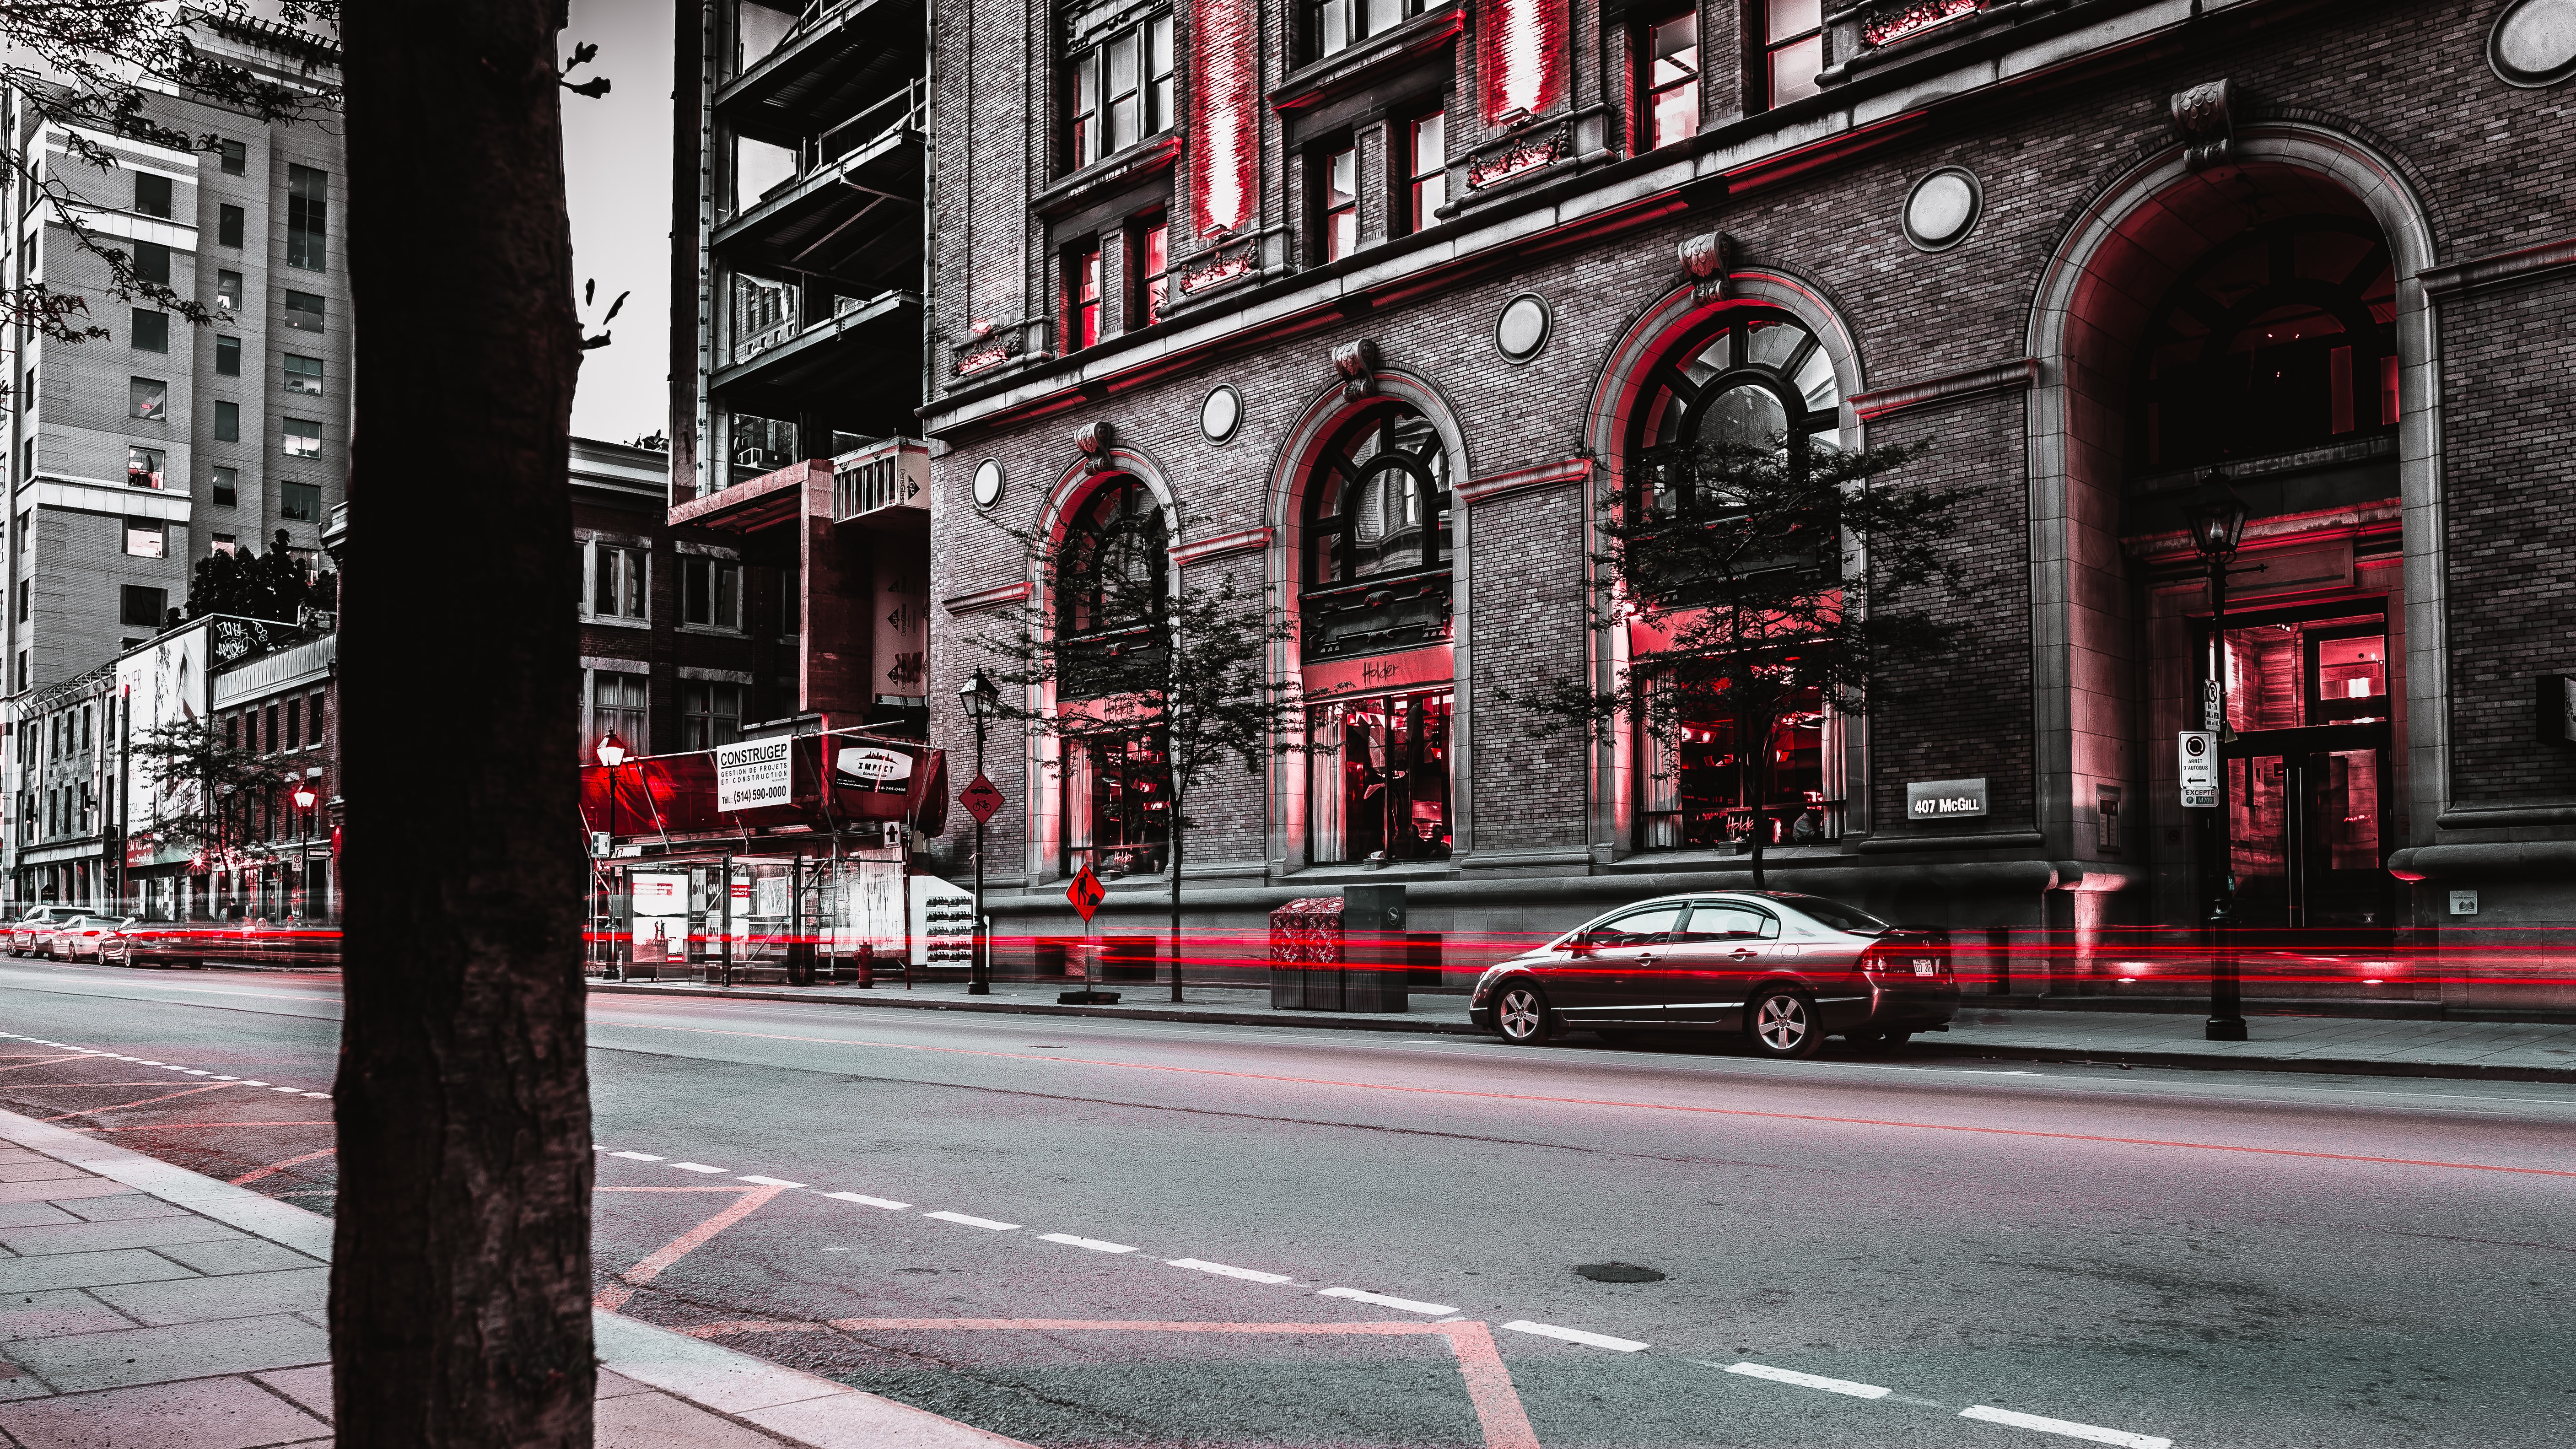 A classy shot of a city road in grey and red, with subtle red light trails